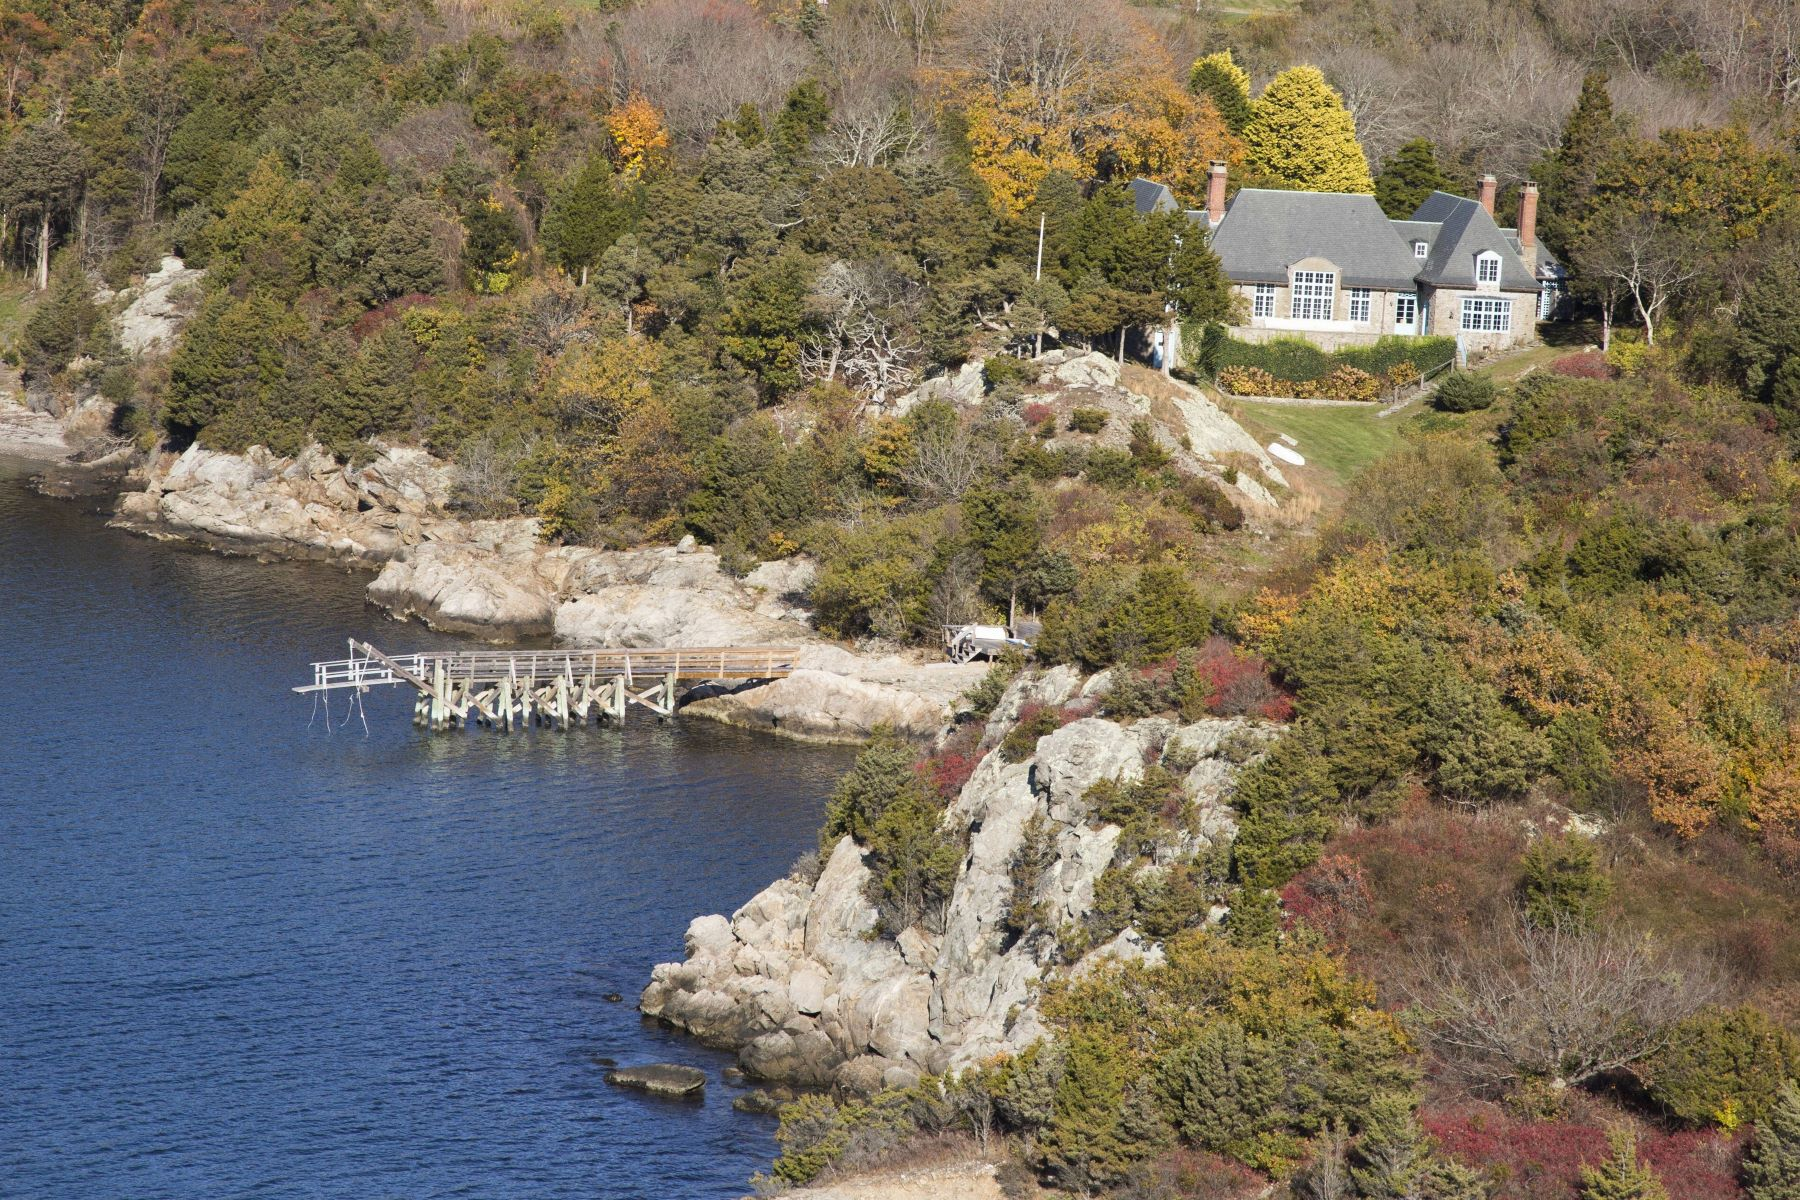 Single Family Home for Sale at Historic Stone Cottage 216 Highland Drive, Jamestown, Rhode Island, 02835 United States